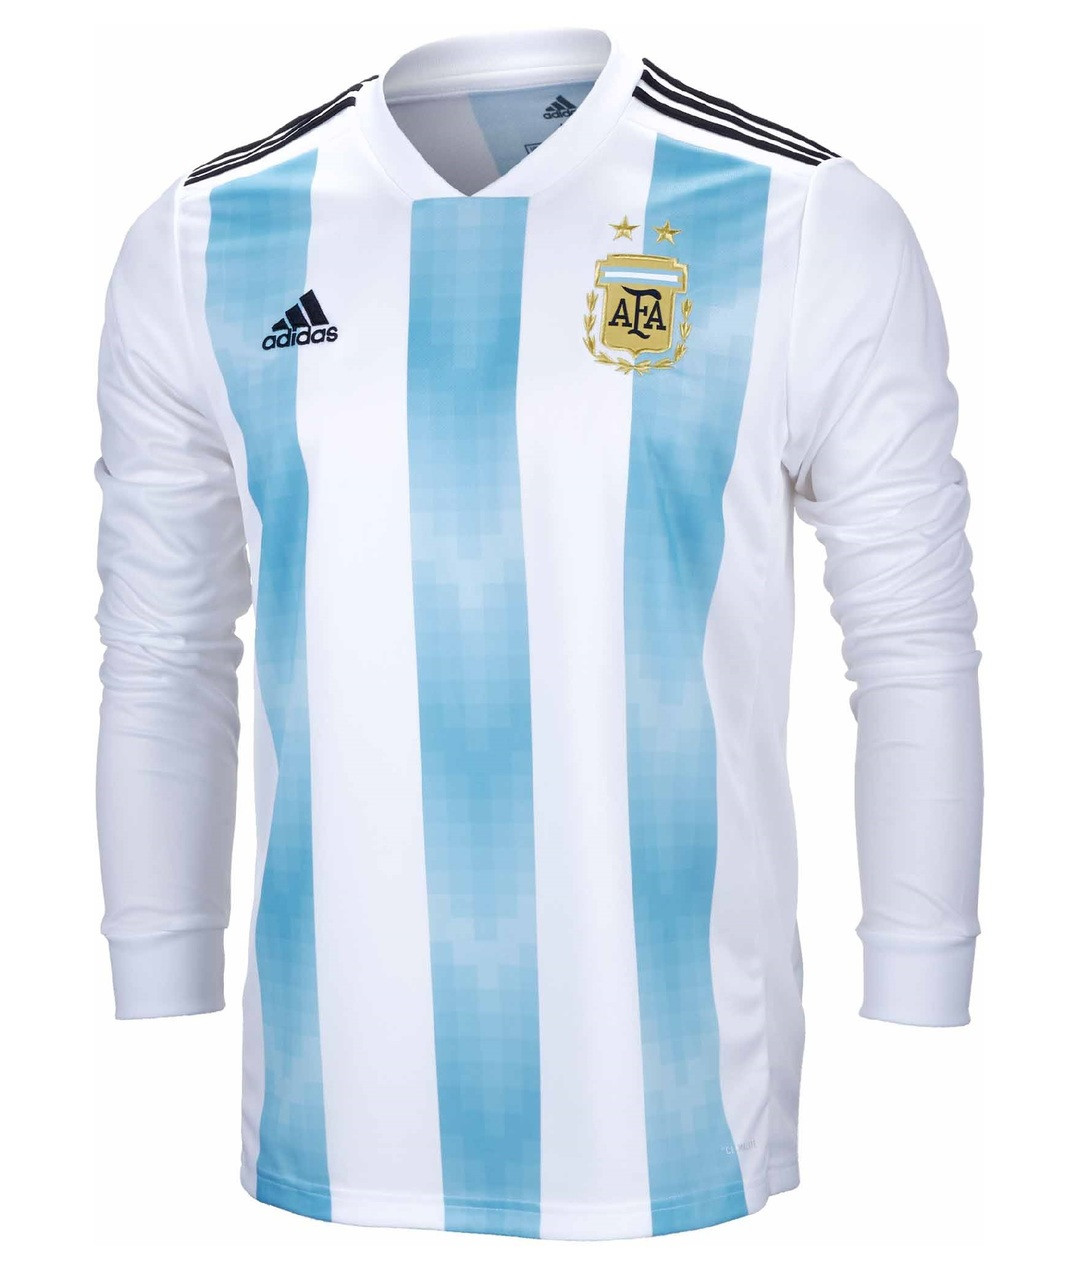 aa1f8734a Adidas Argentina Home Long Sleeve Jersey 2018-19 - White Clear Blue Black  (6318) - Cheap Nike Football Boots Sale